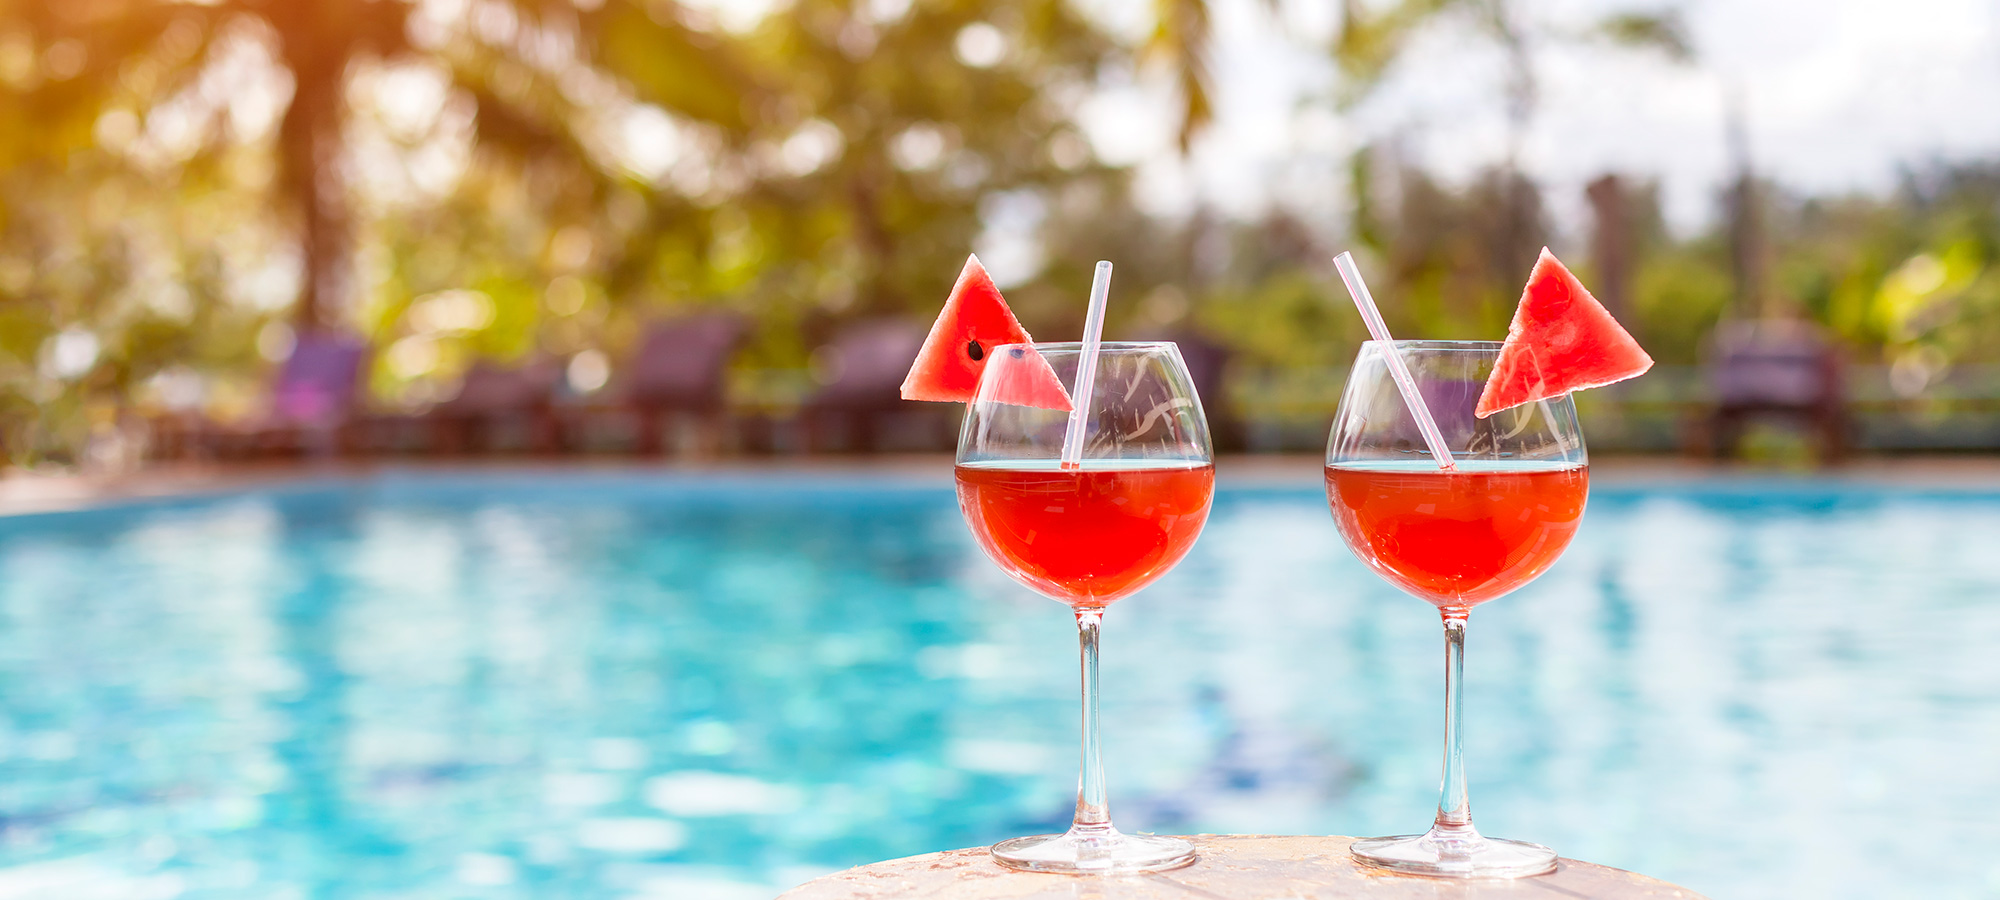 Two drinks sitting poolside